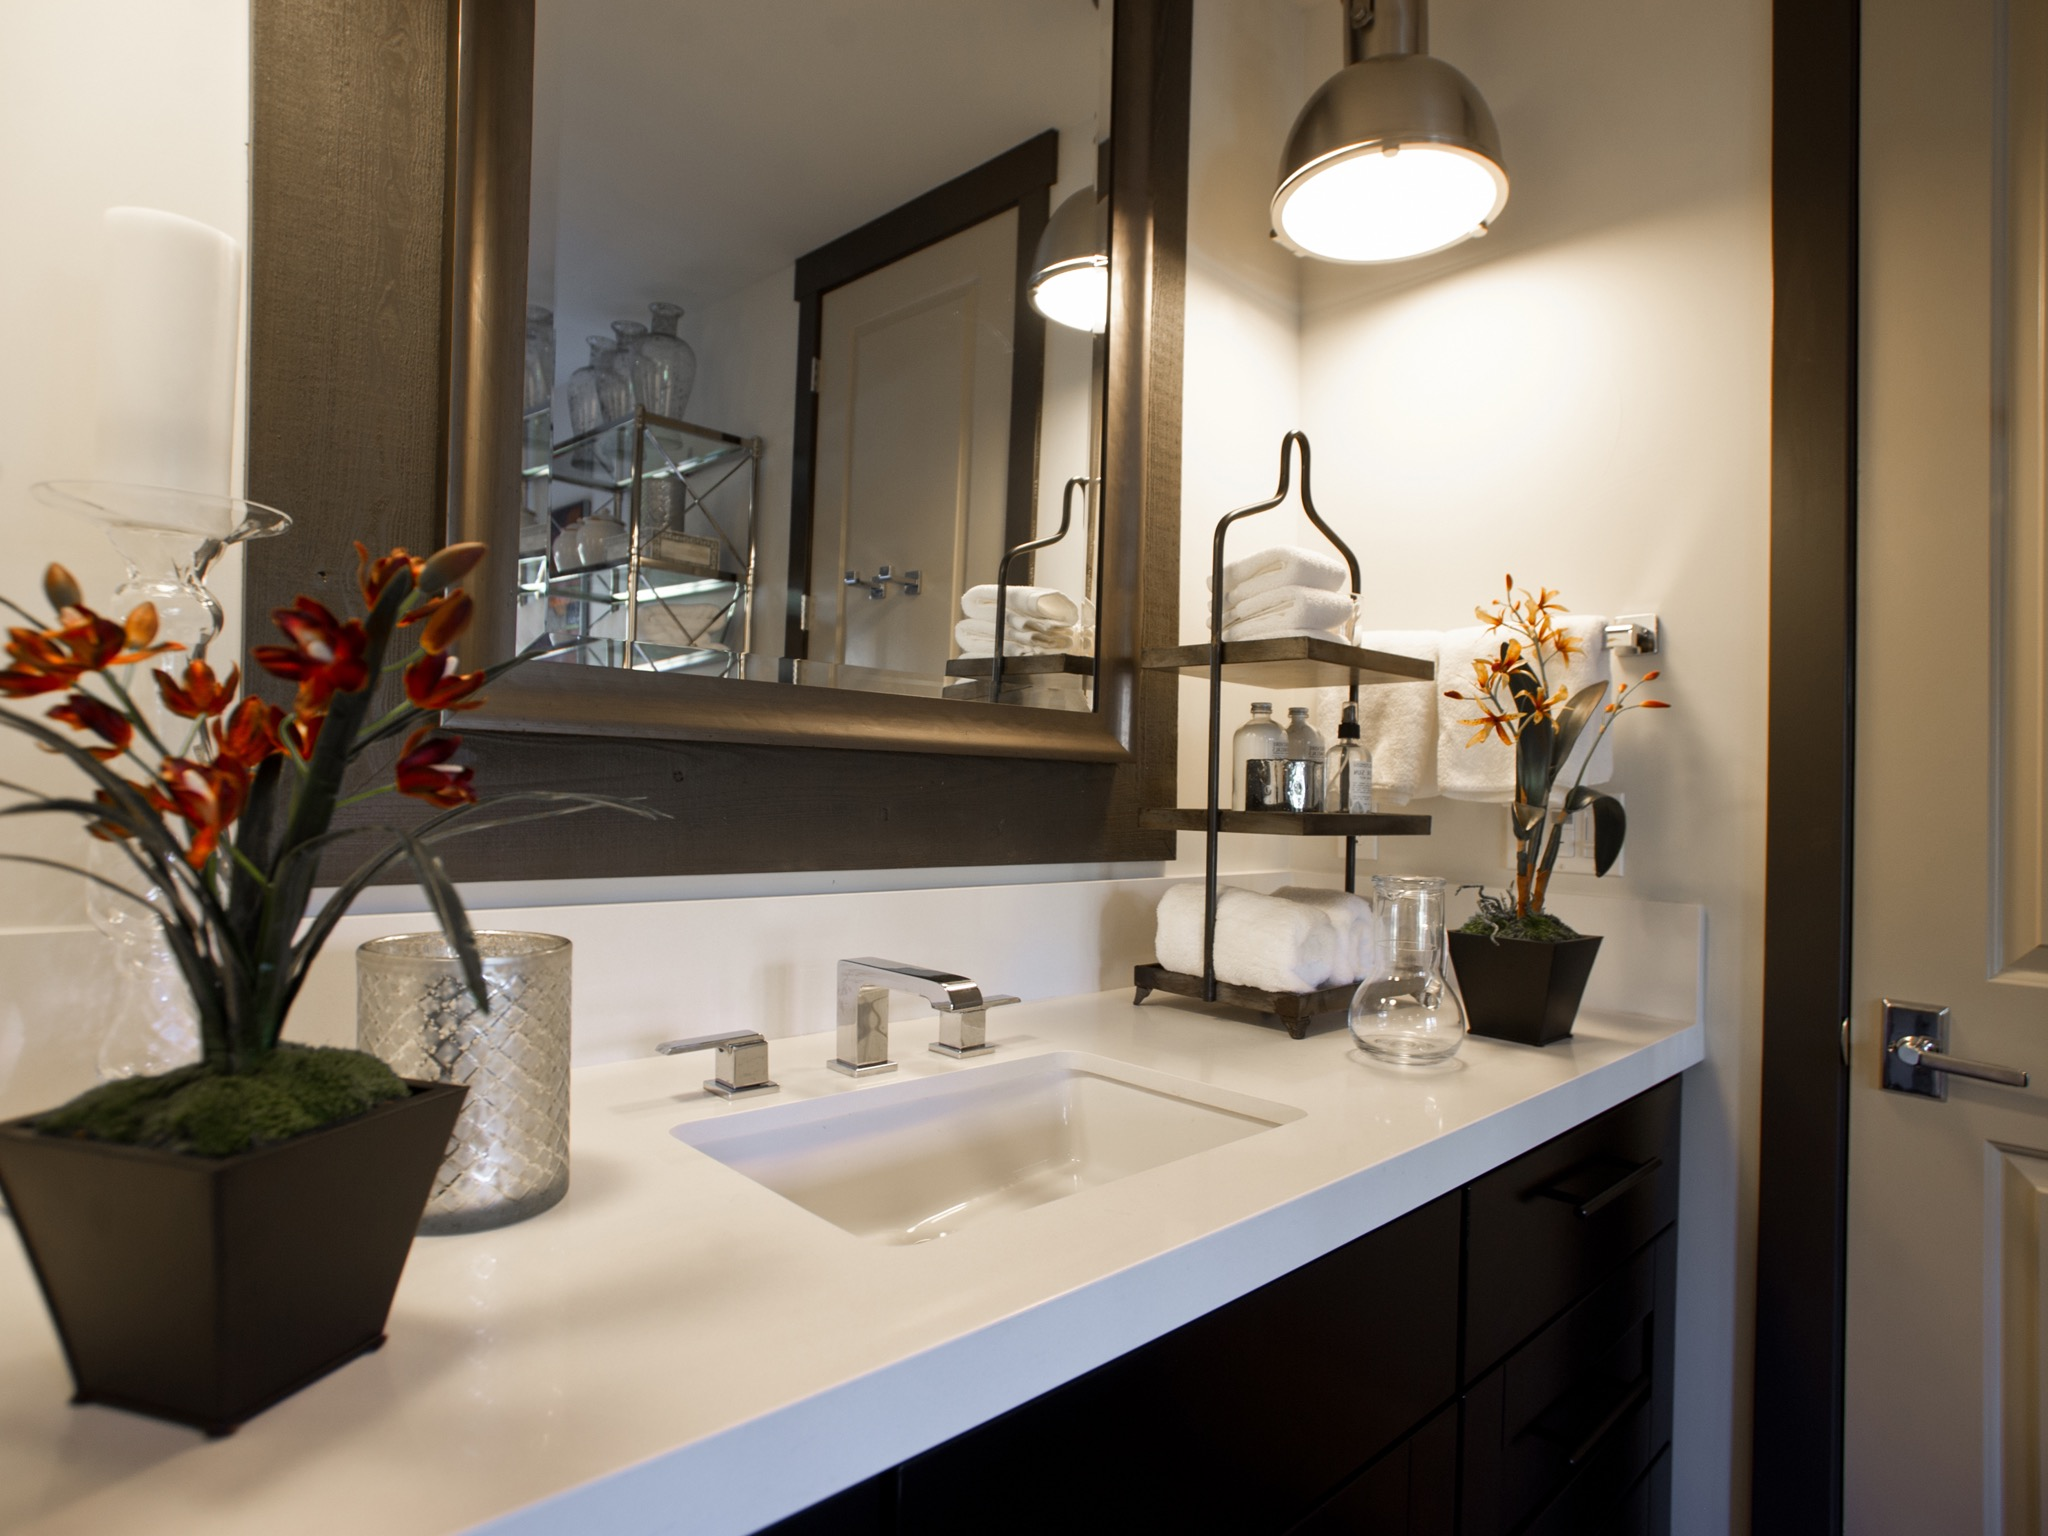 Modern Bathroom Accessories For Dark Vanity And Large Wood Framed Mirror (View 7 of 14)